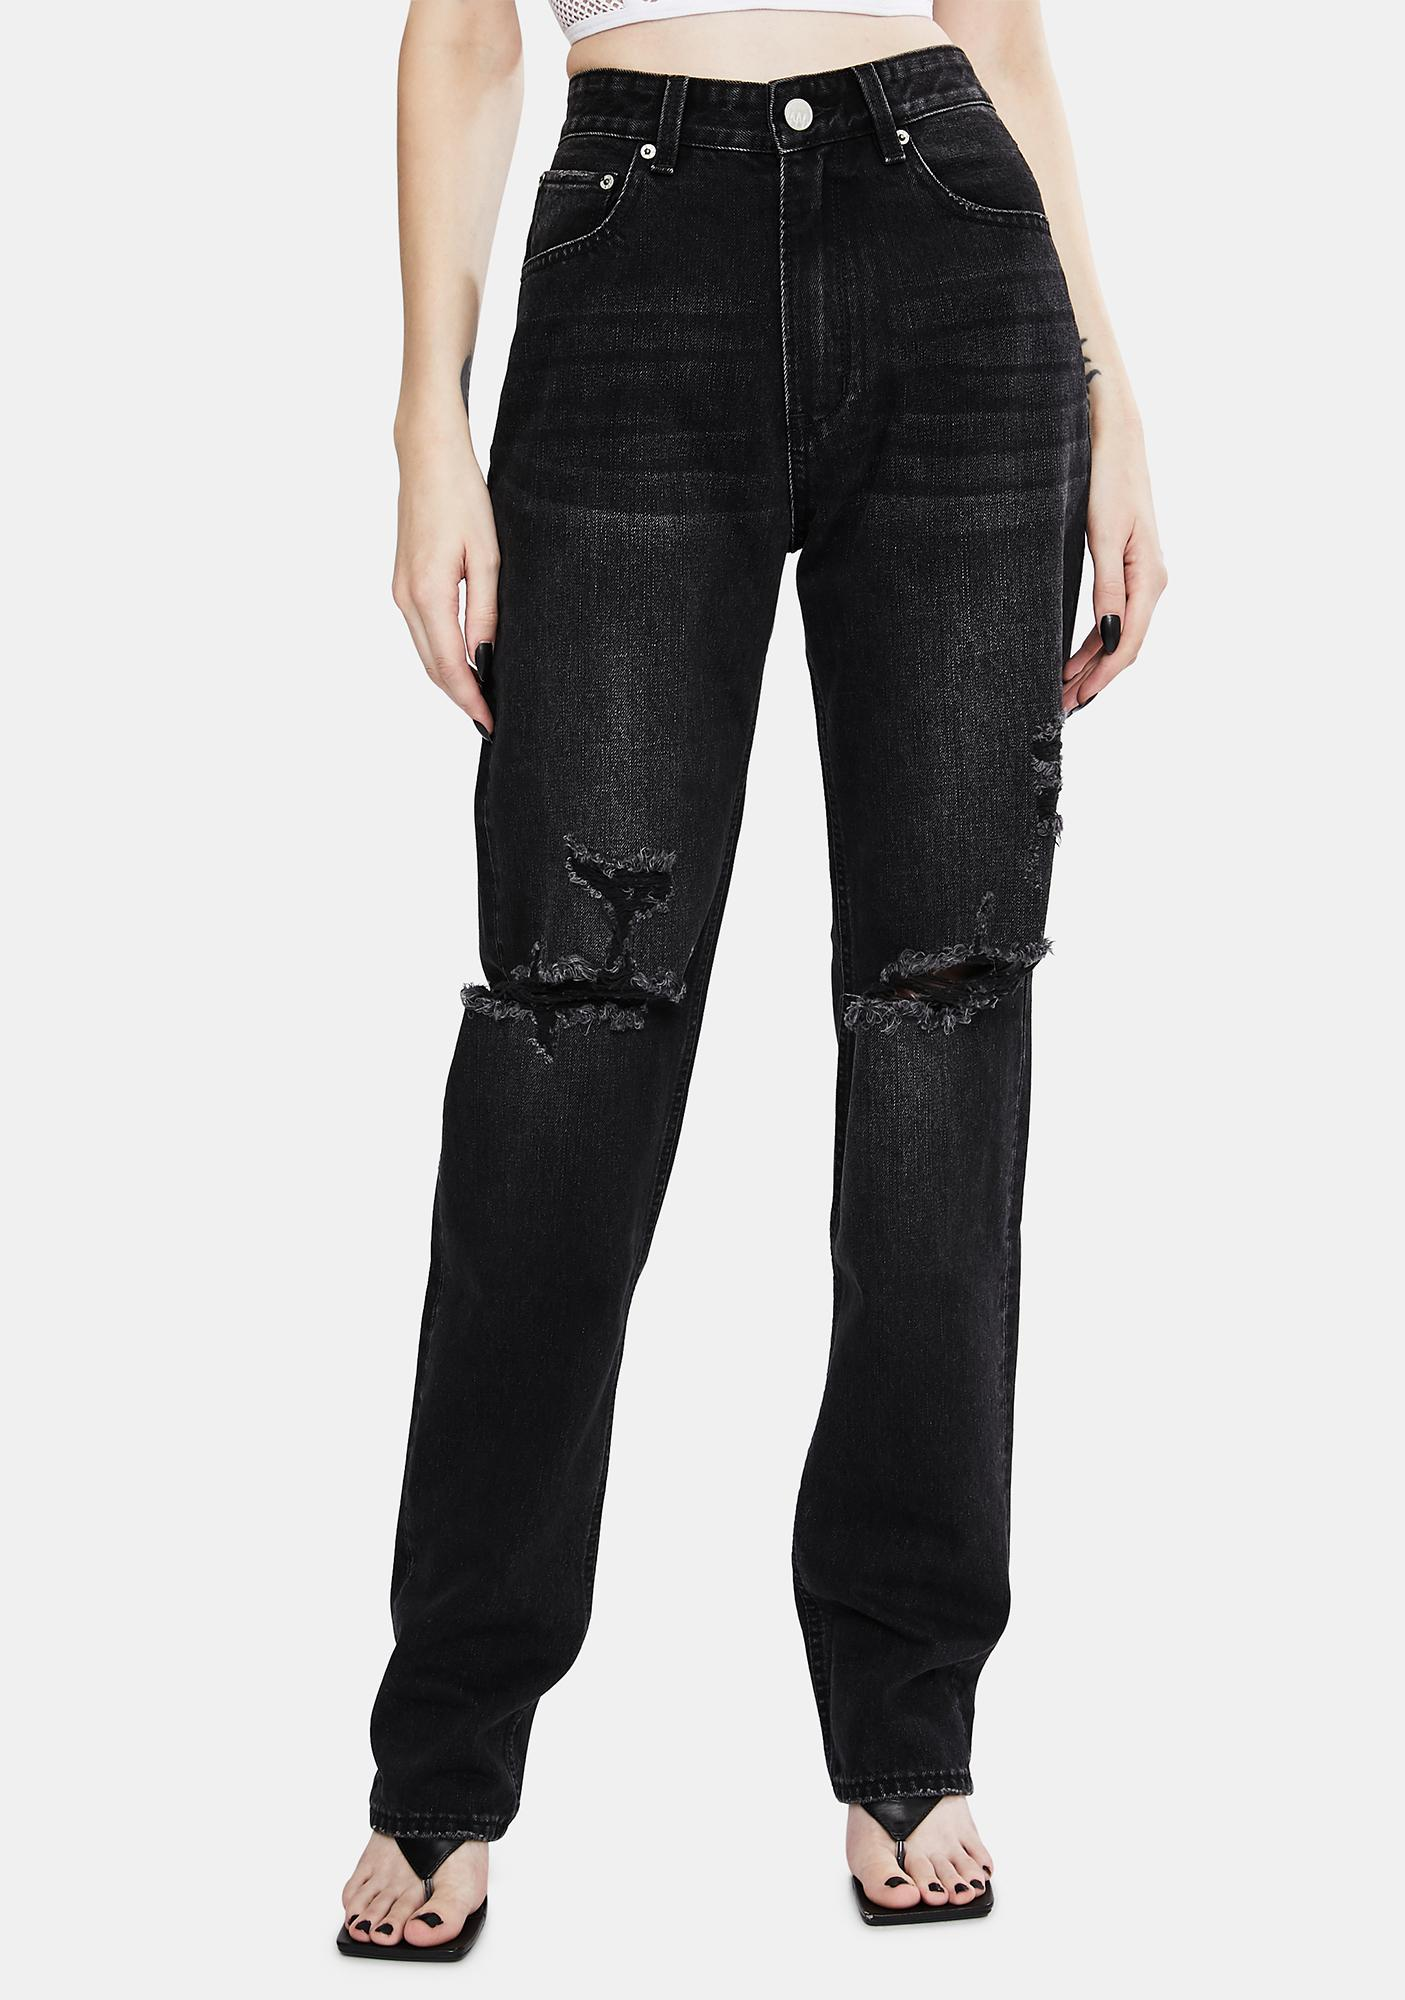 Zee Gee Why Ashes To Ashes Rebound Mid Rise Jeans